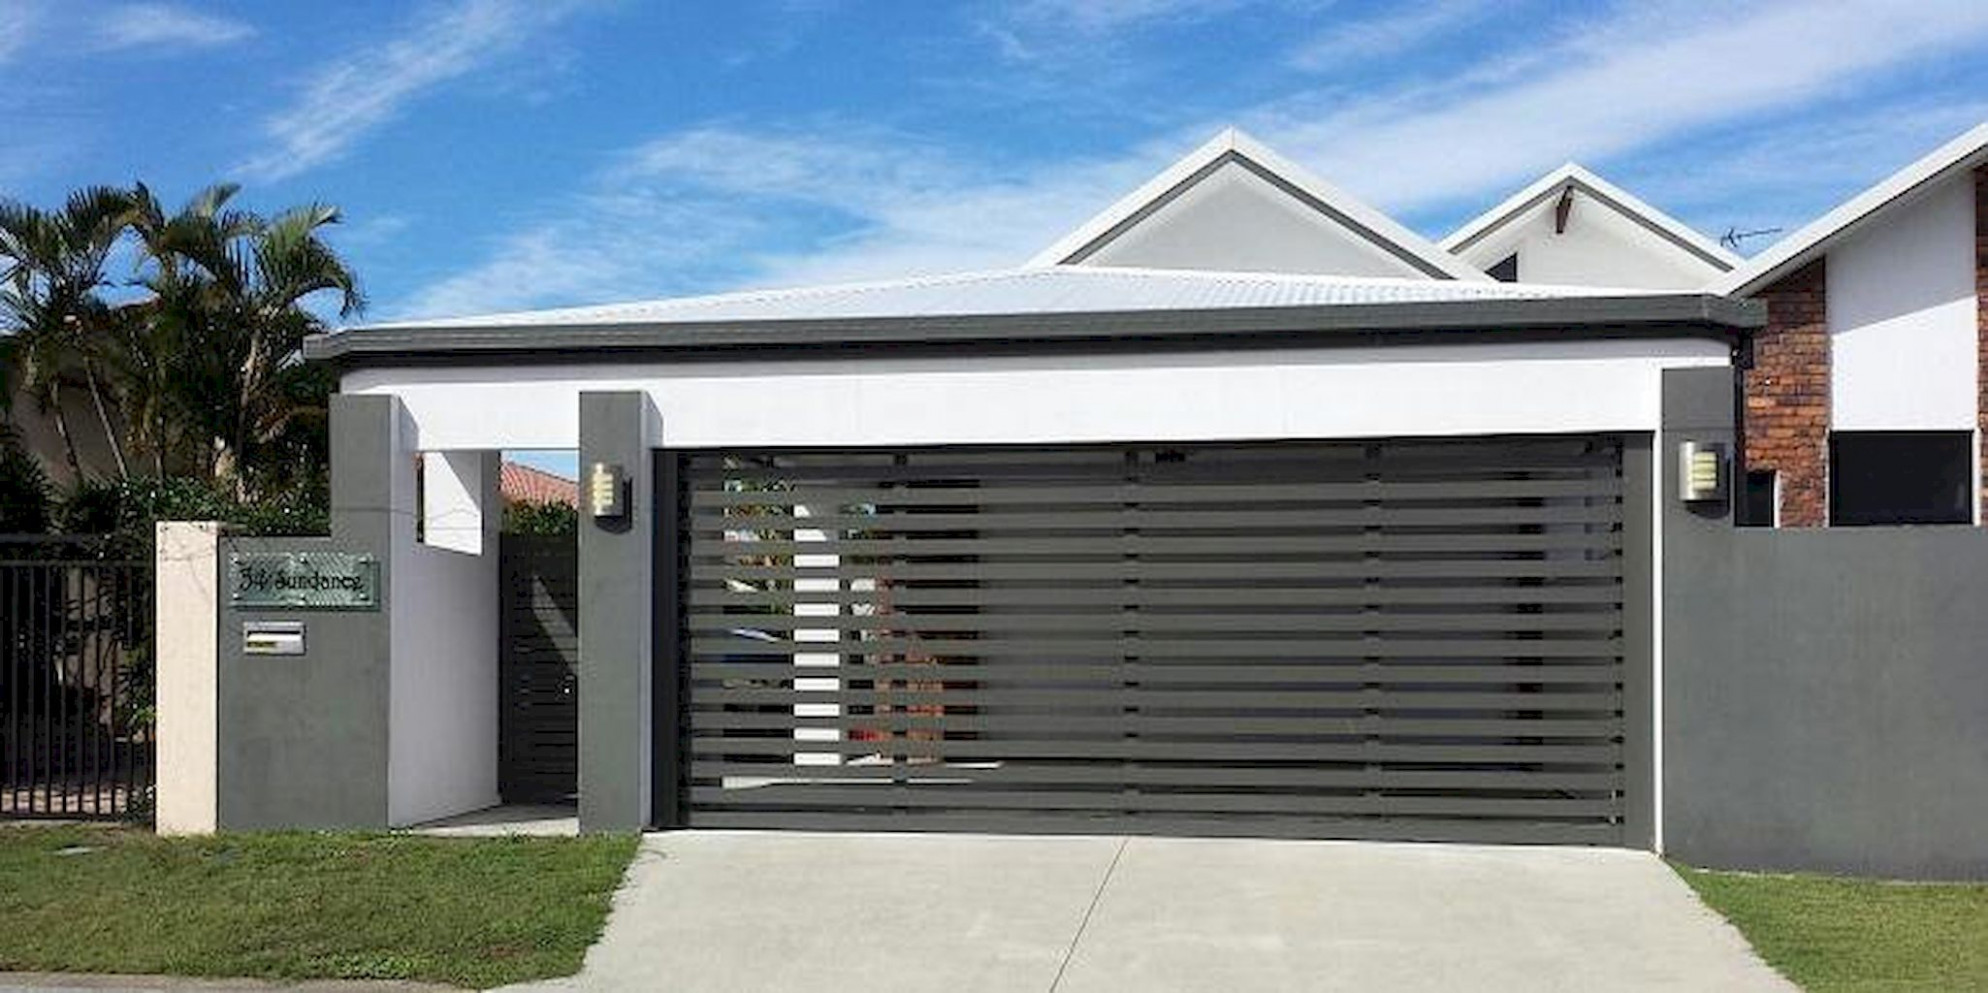 Pin By Lisa Hills On For The Home | Carport Garage, Modern ..